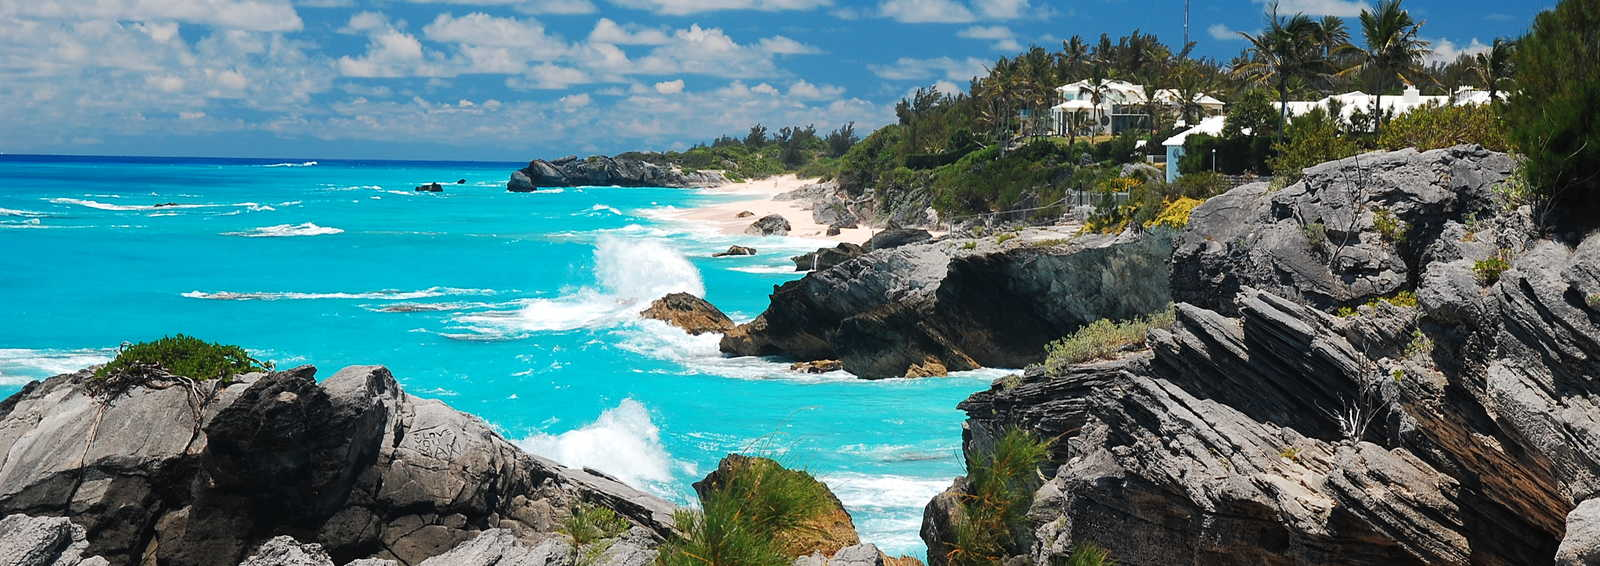 Coastal view Bermuda